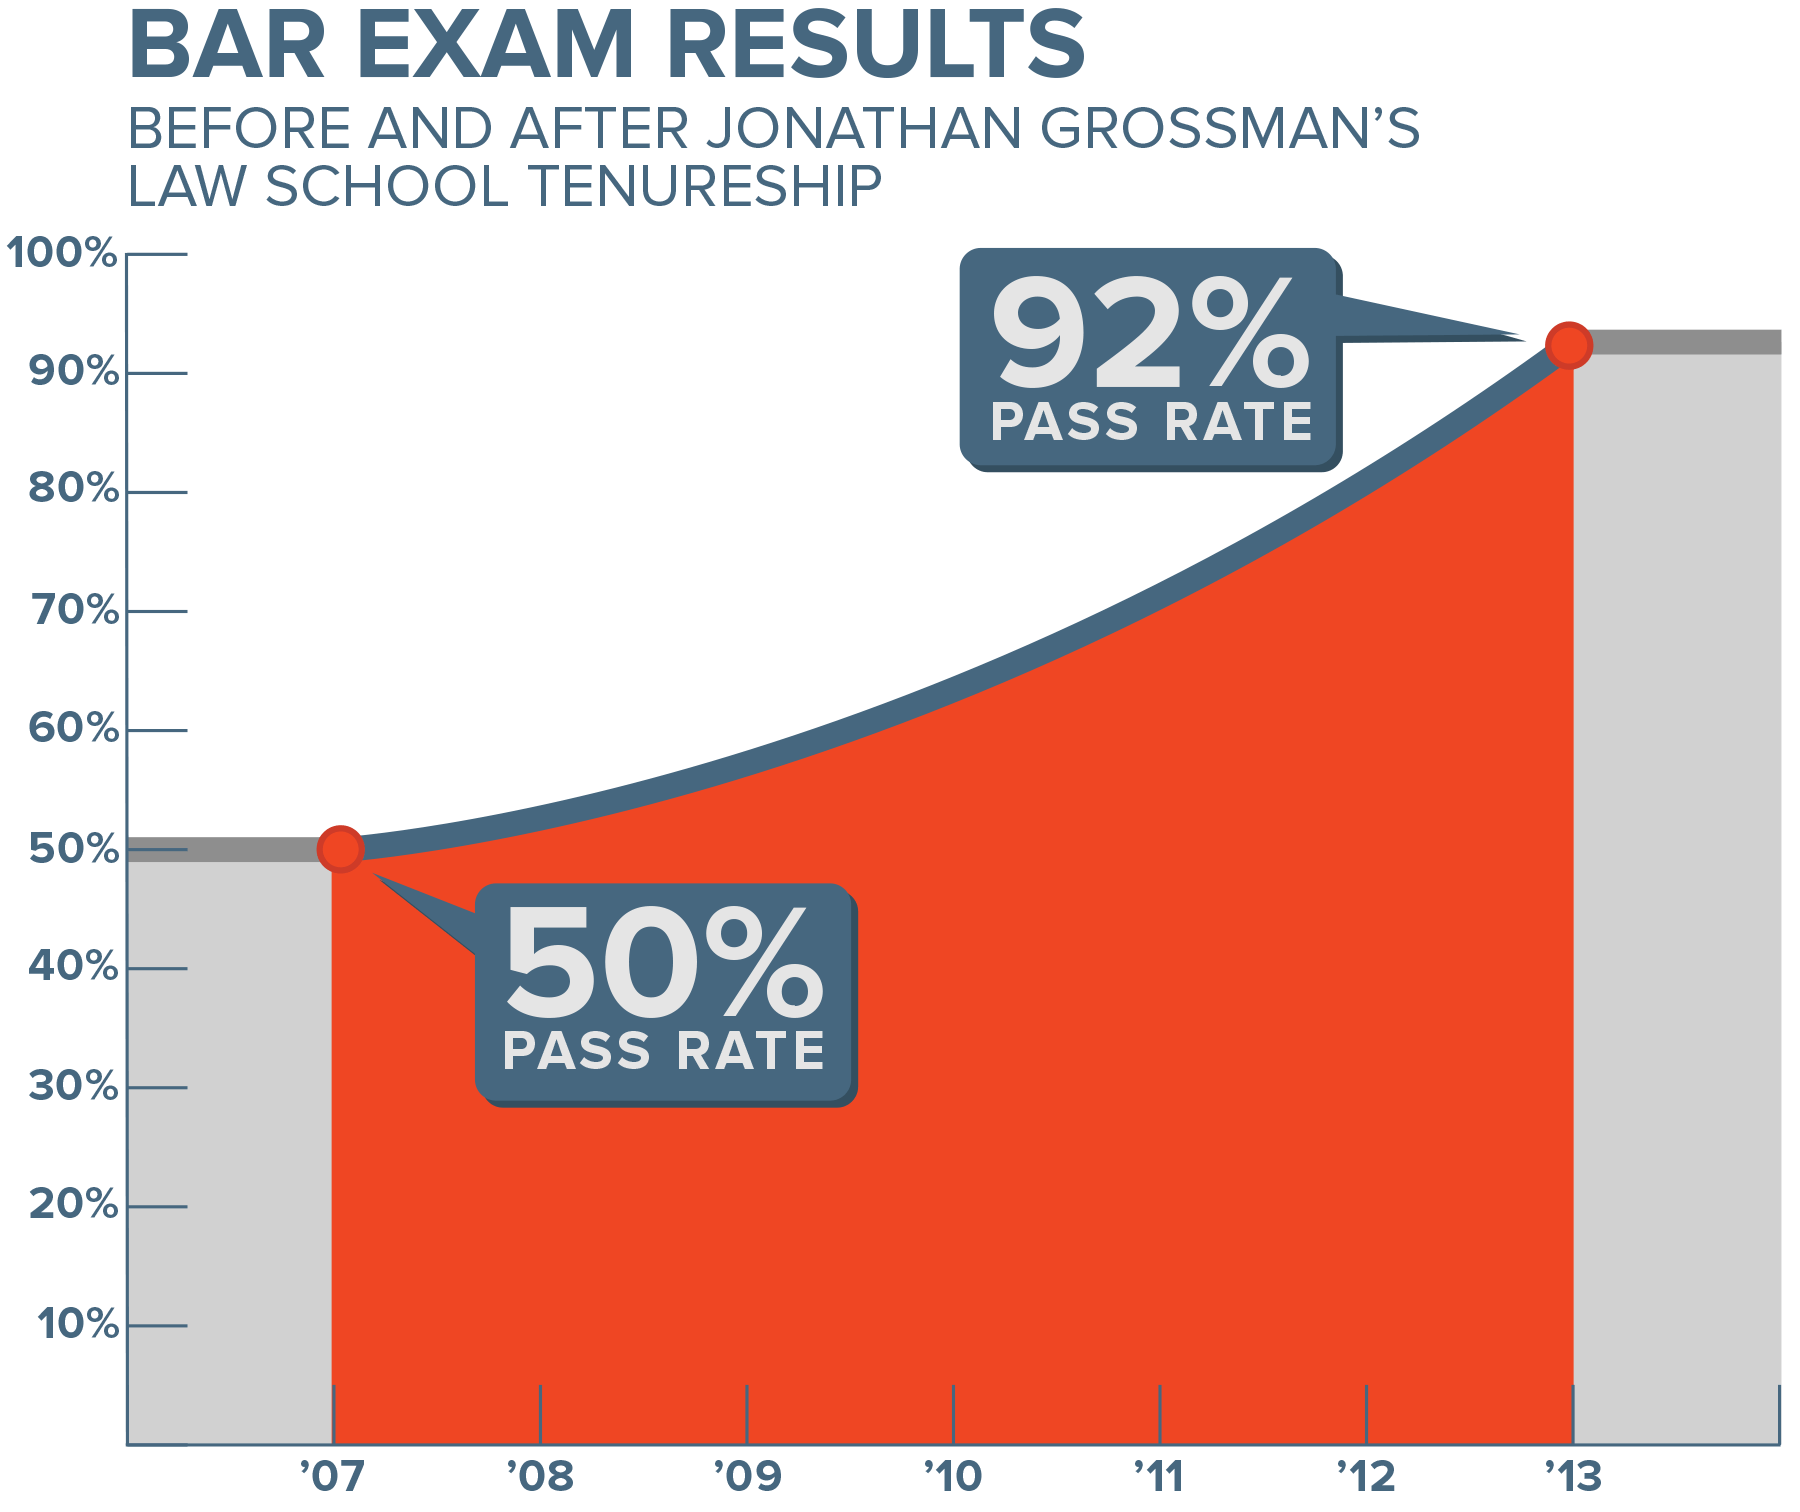 Chart showing the massive improvement in bar passage rates due to Professor Jonathan Grossman.